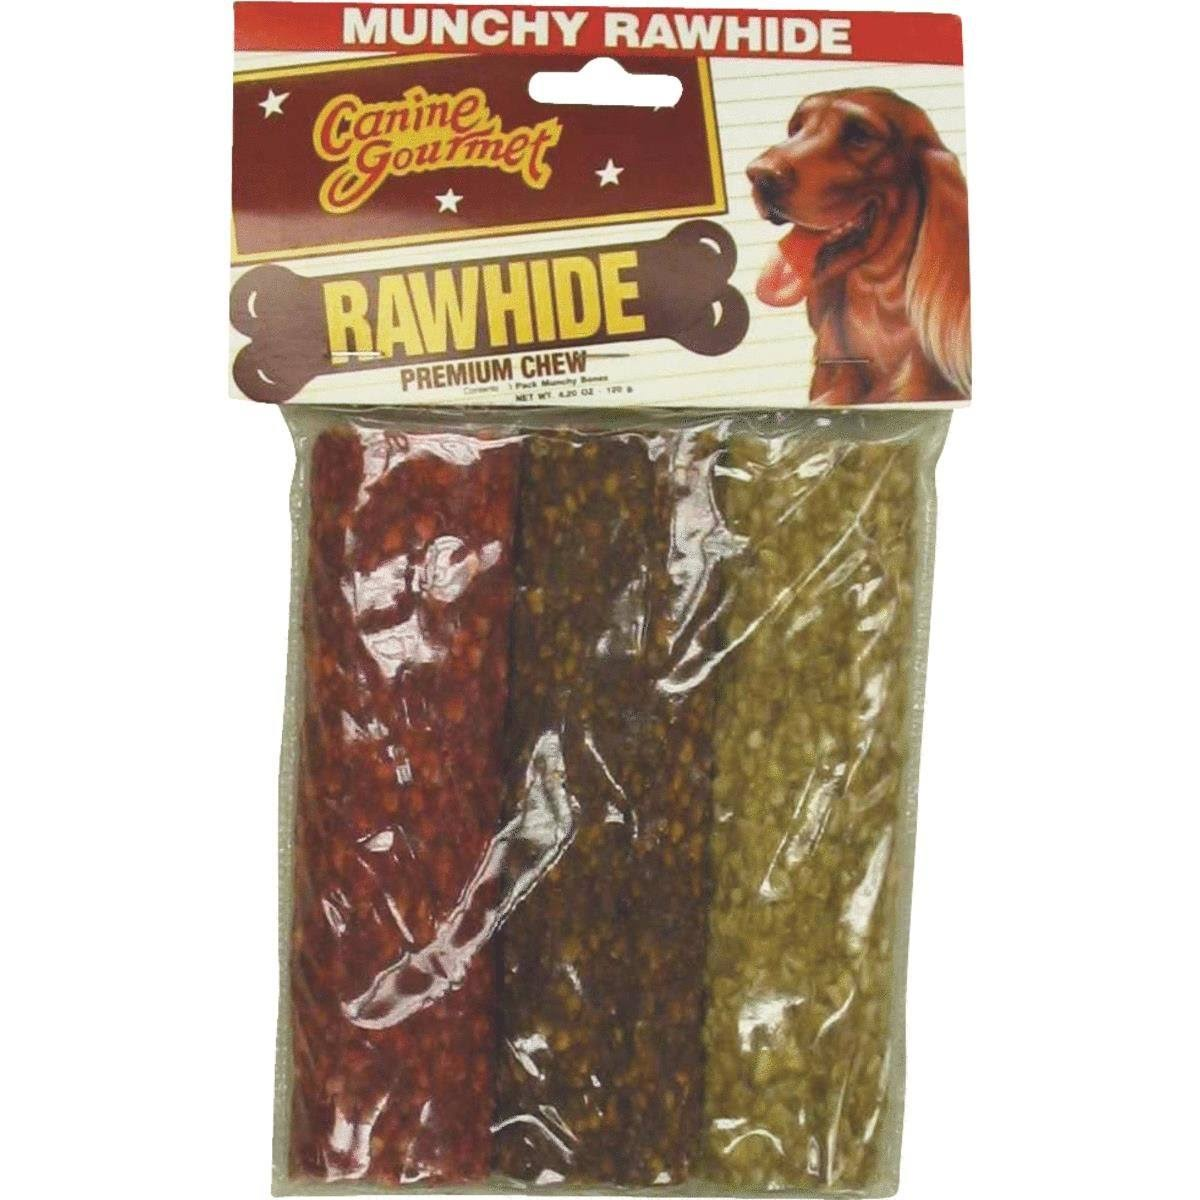 Westminster Pet 03191 Munchy Dog RAWHIDE Chew